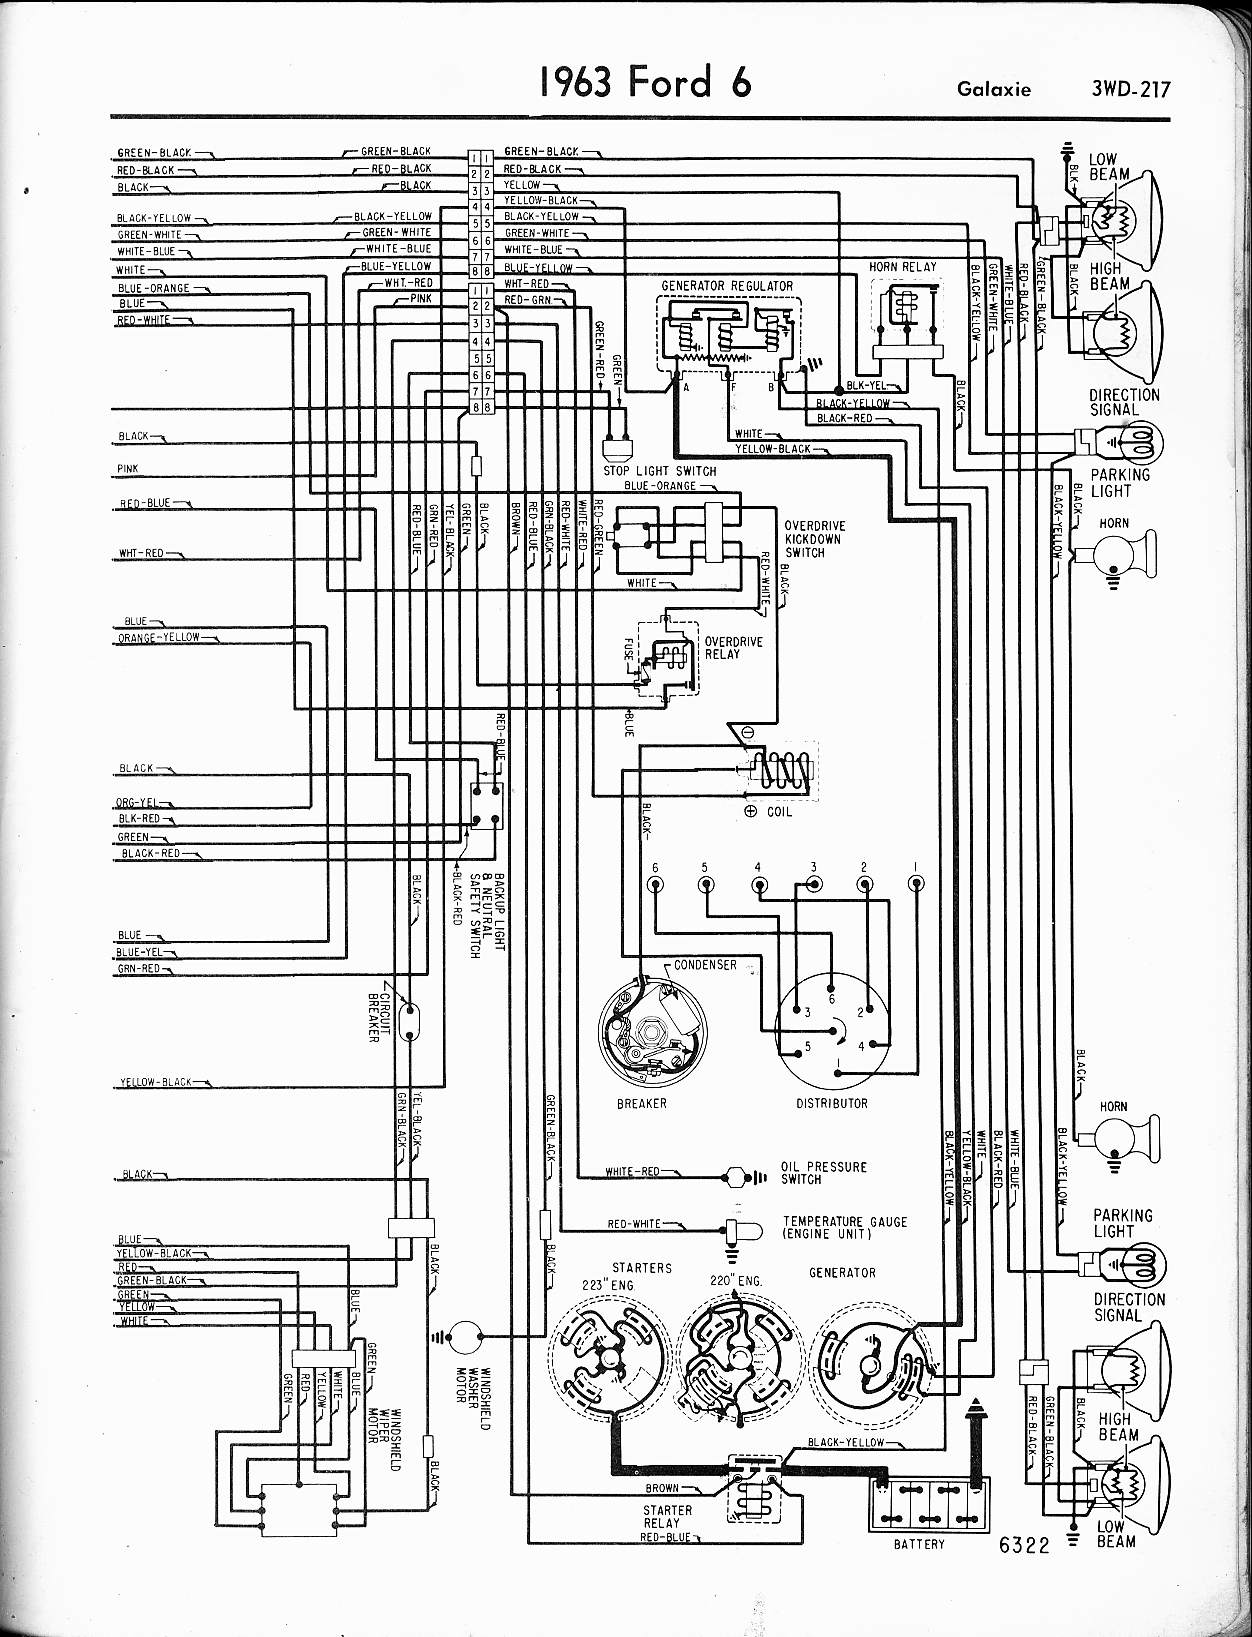 1964 F100 Wiring Diagram Ford Truck Ignition Wiring